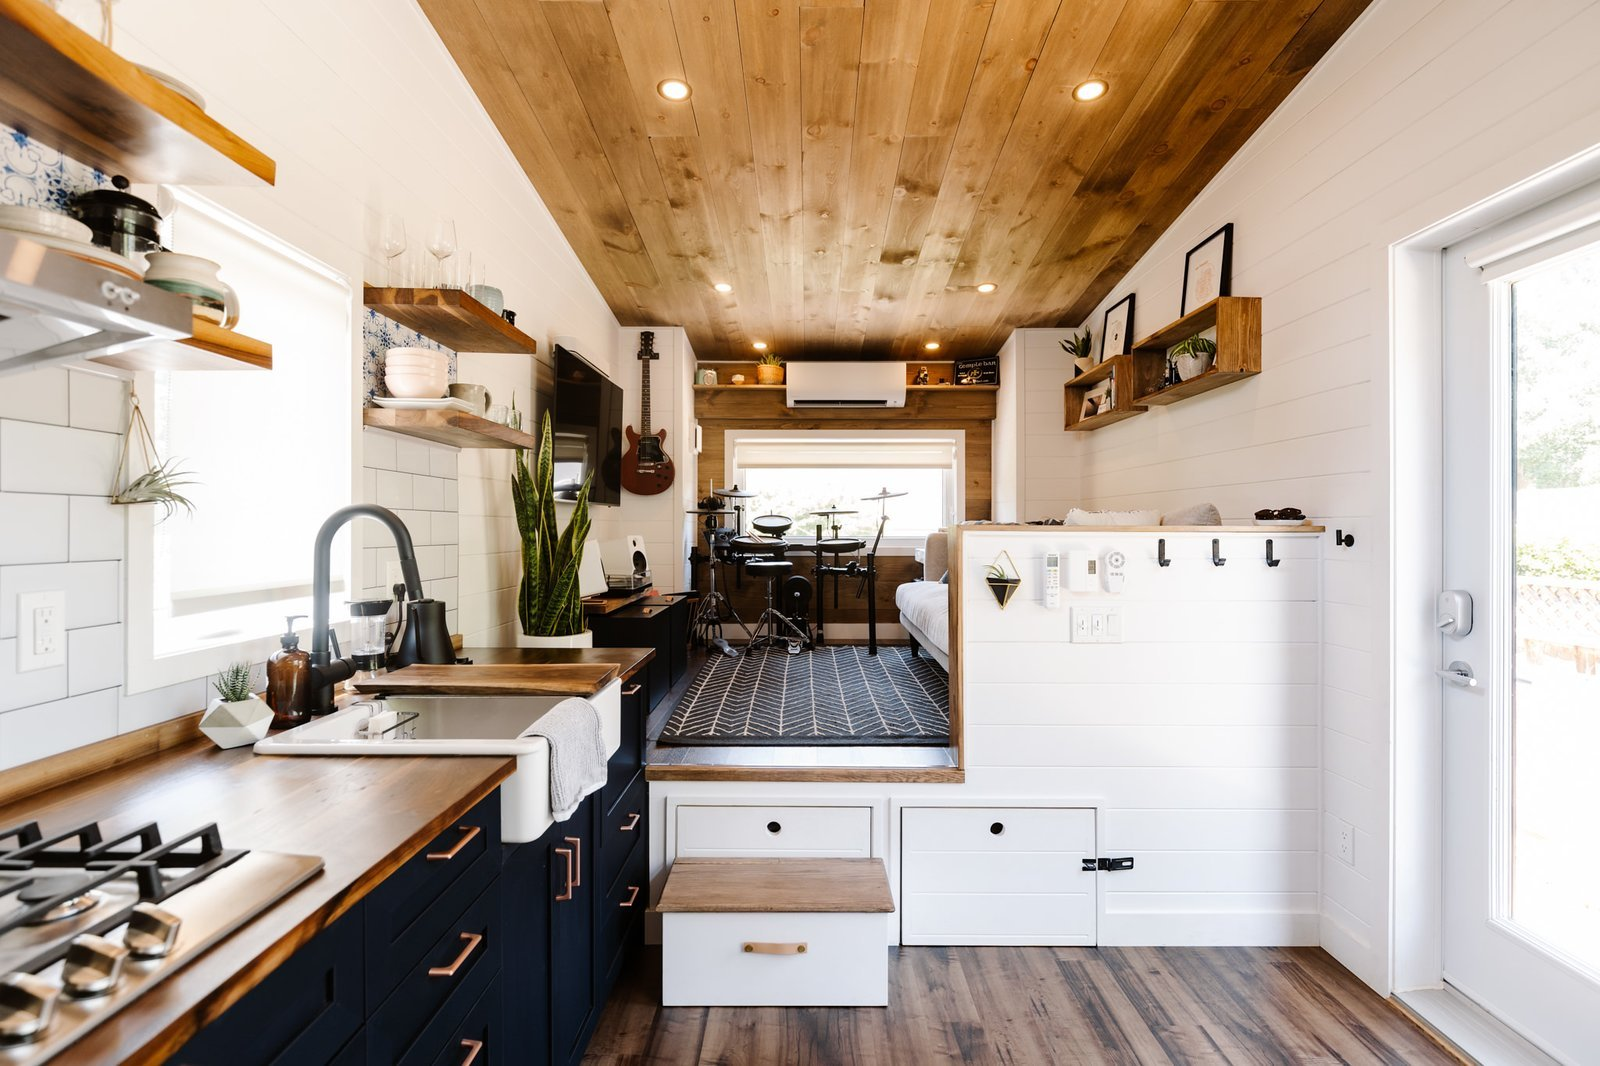 Here's What They Don't Tell You About Living in a Tiny House